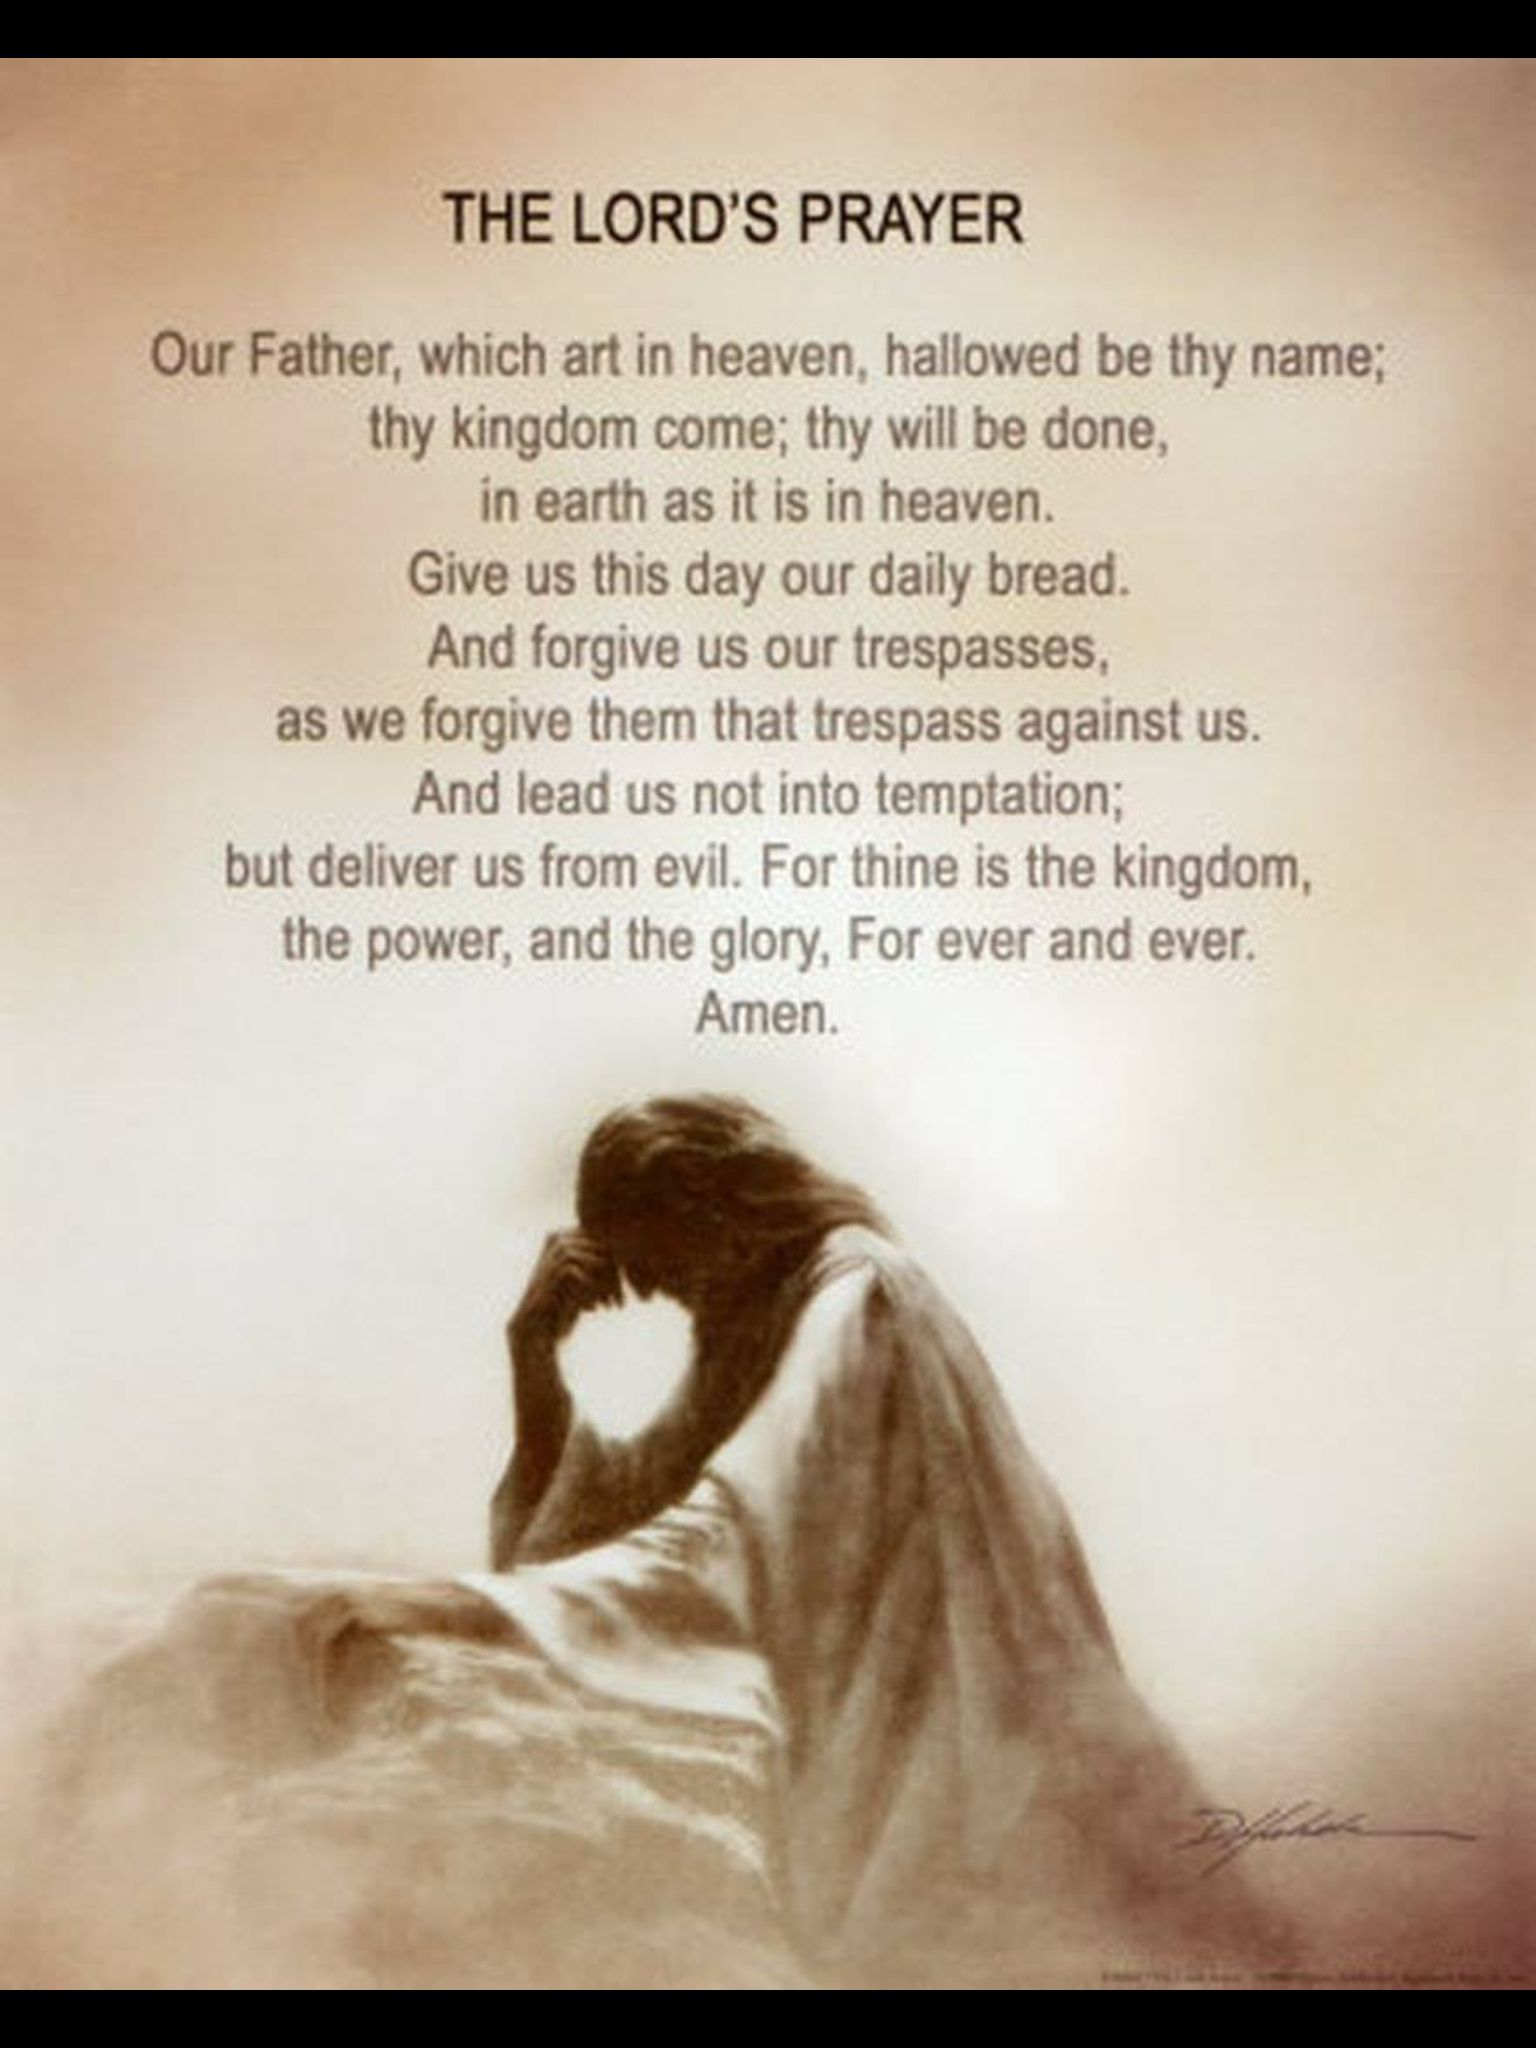 Lord, here our prayer...